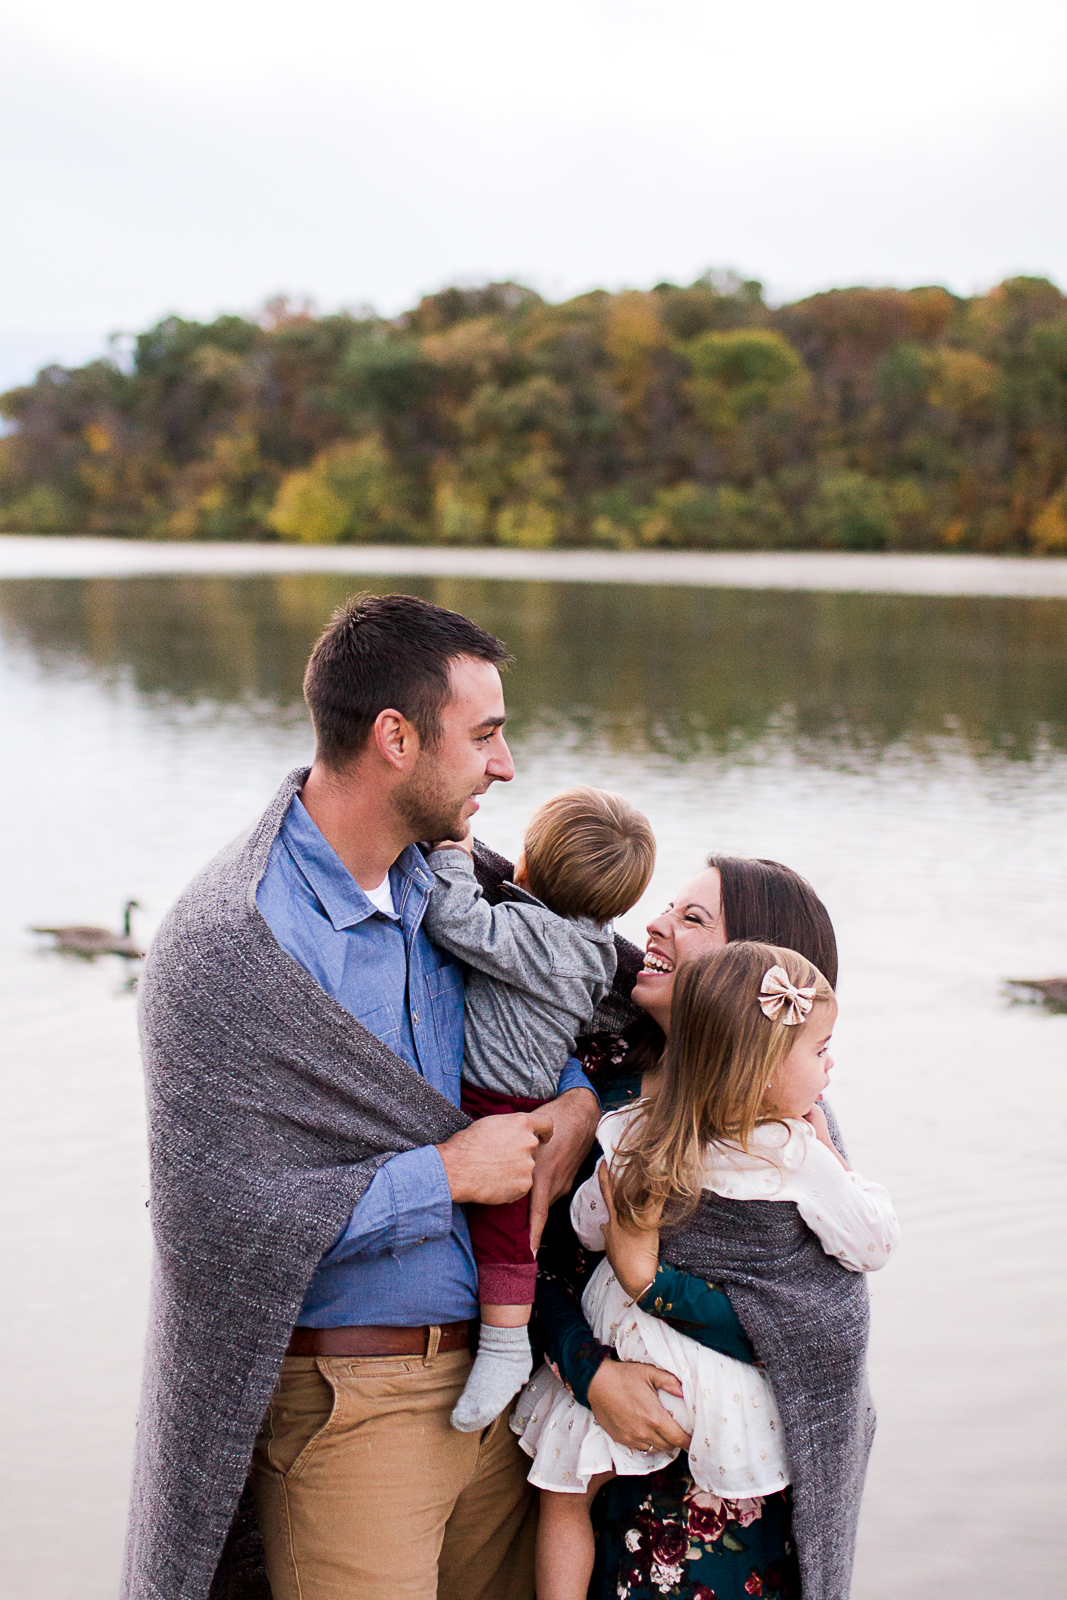 Candid photo of a family cuddling in a blanket by a lake, Kansas City family photographer, autumn family session at Shawnee Mission Park, Rebecca Clair Photography